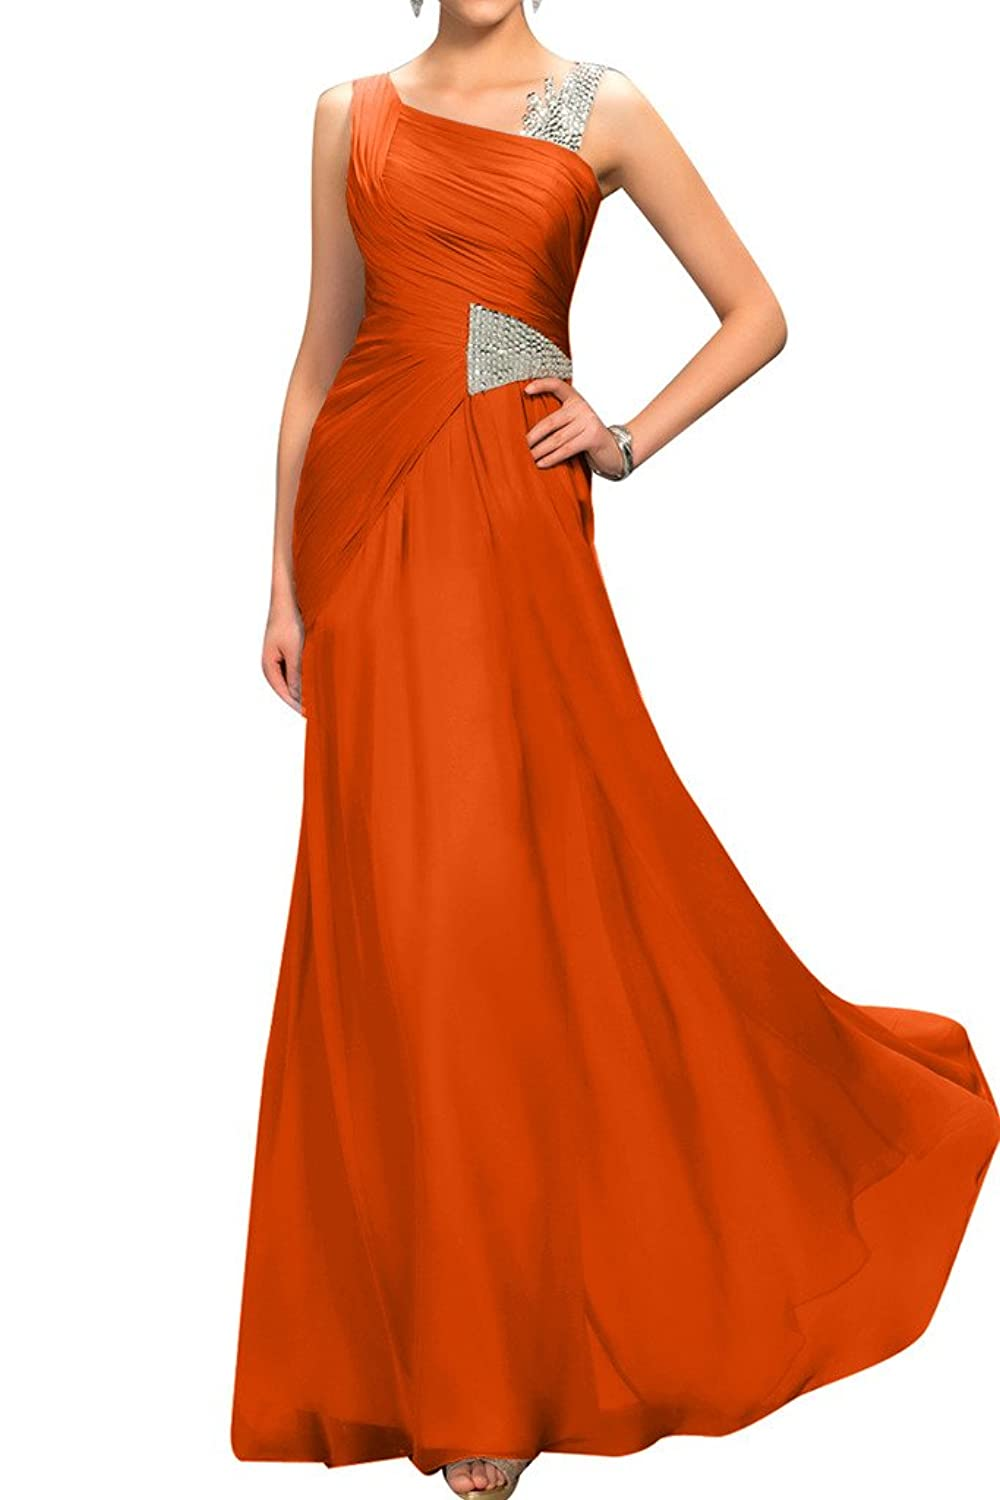 Sunvary Simple A Line Sleeveless Wedding Guest Dress Party Gowns Evening Dress